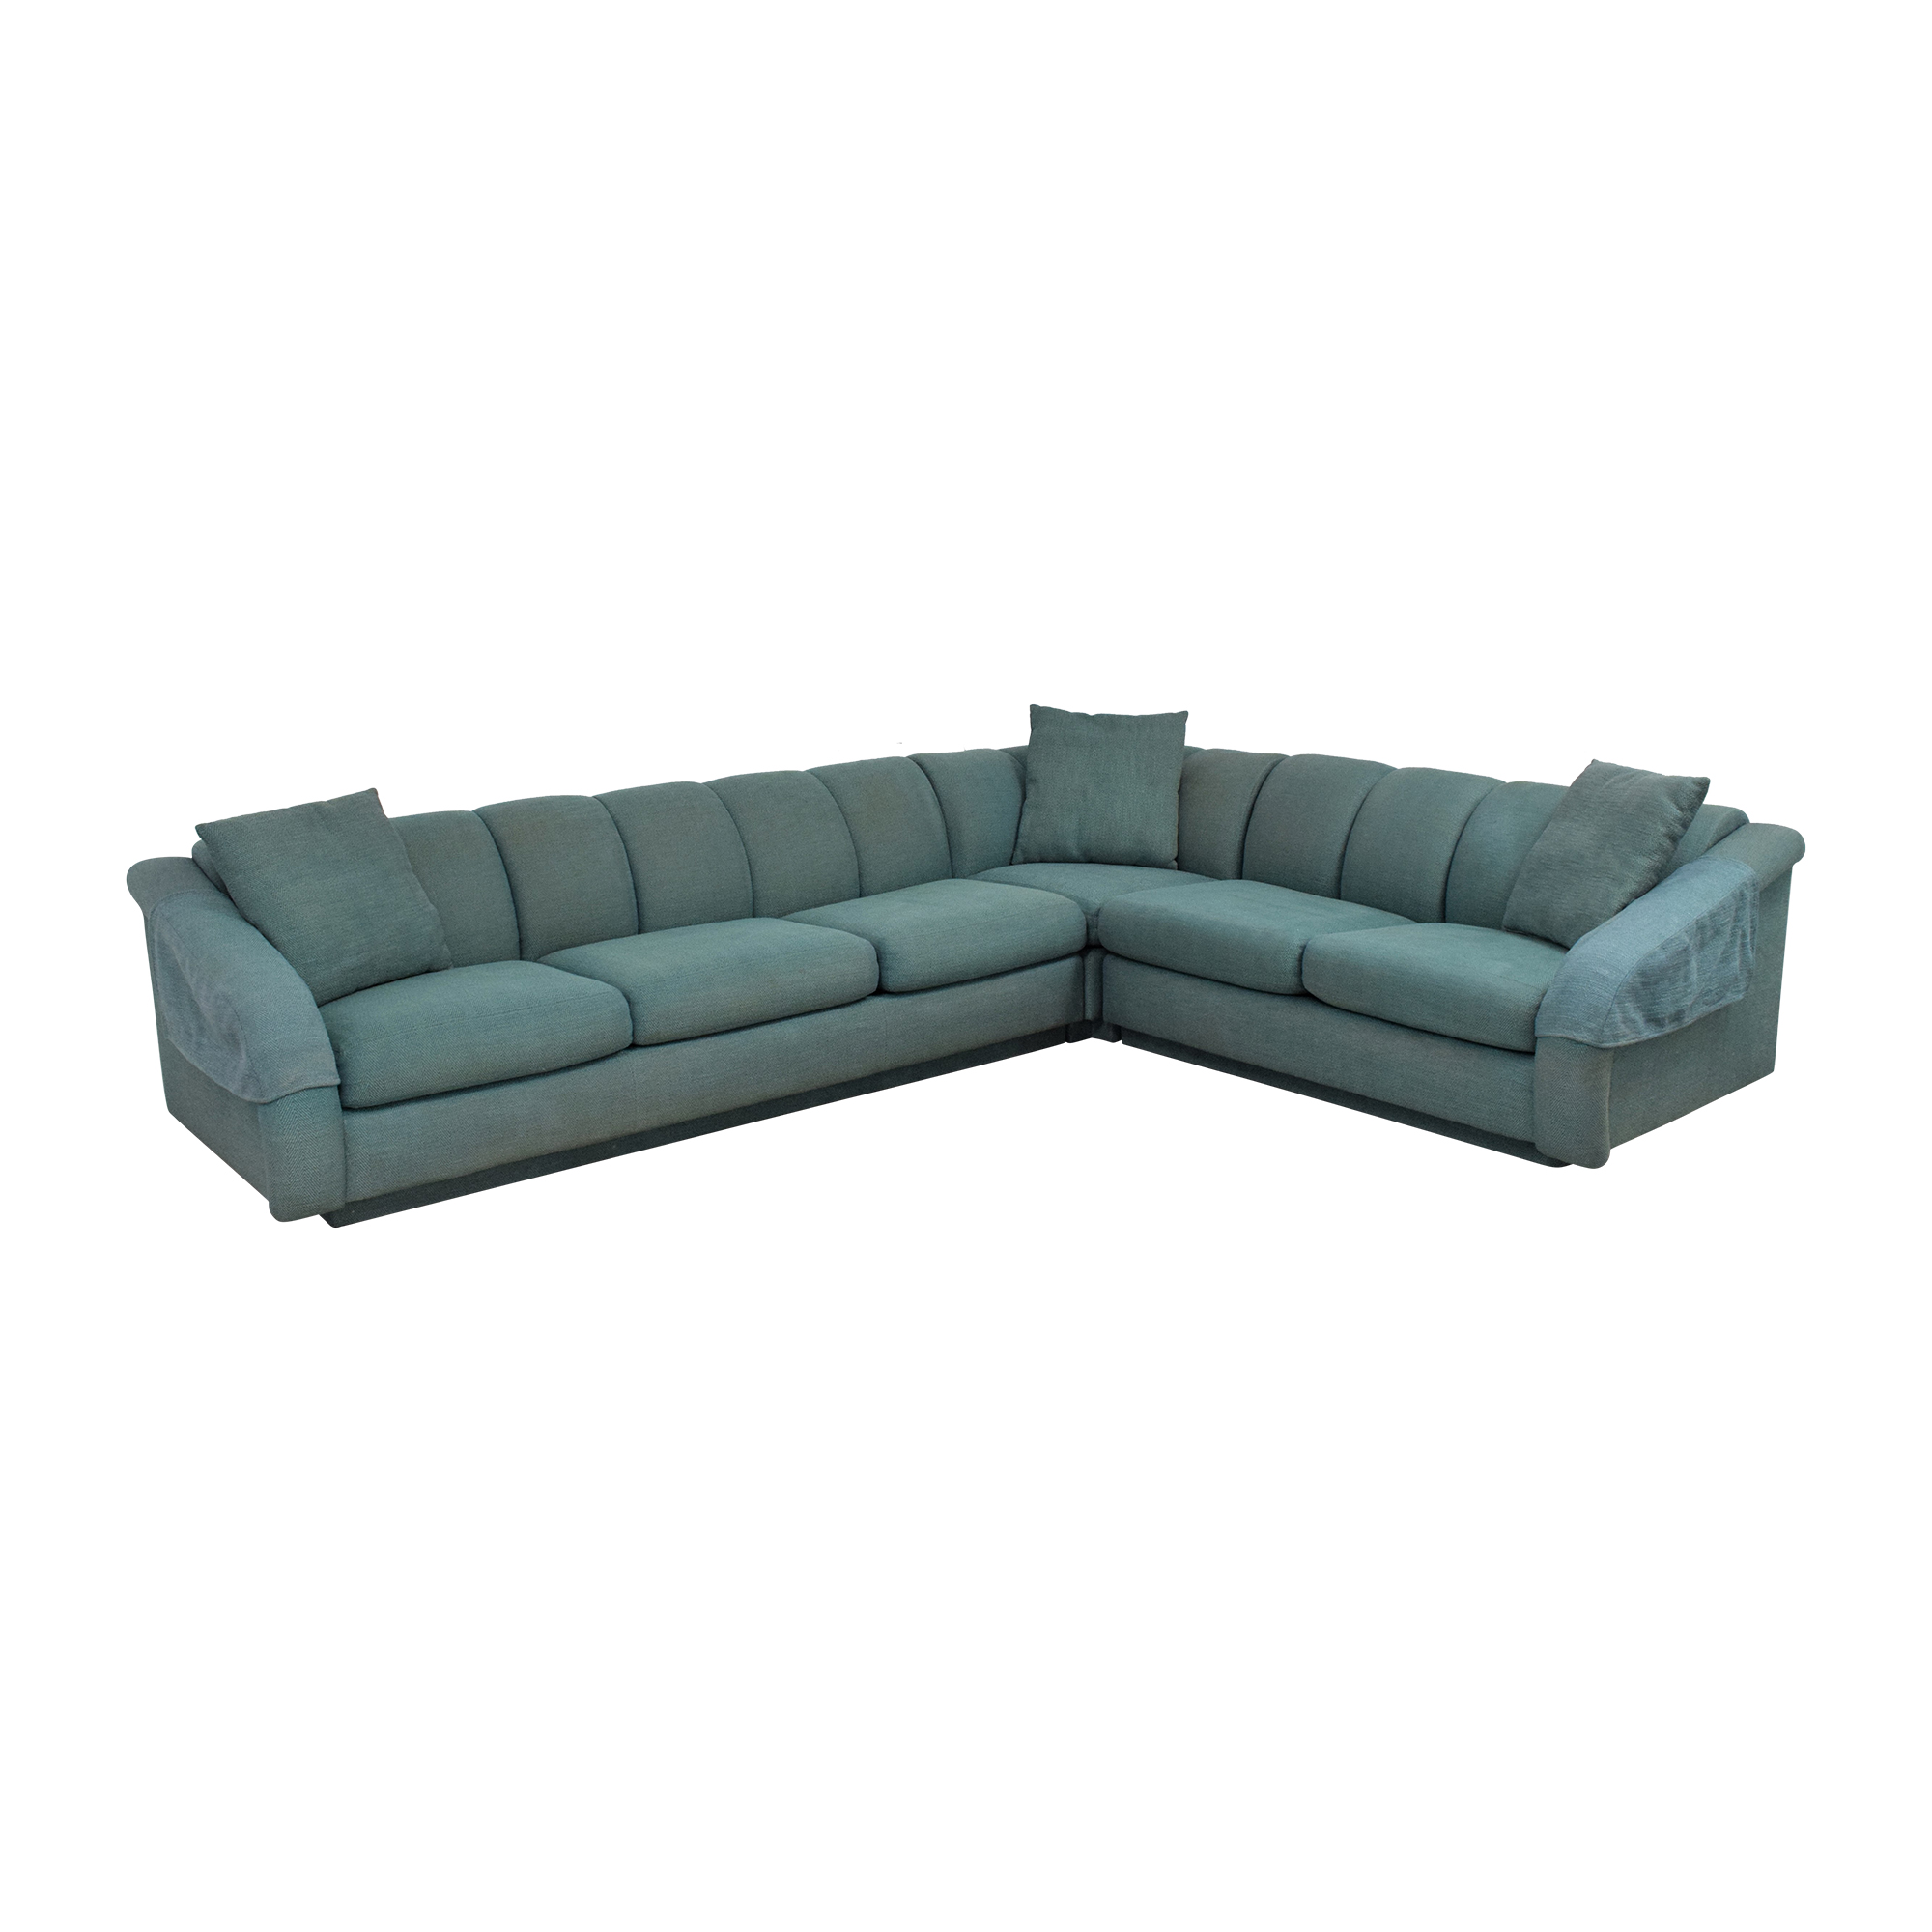 Directional Furniture Sectional Sofa sale